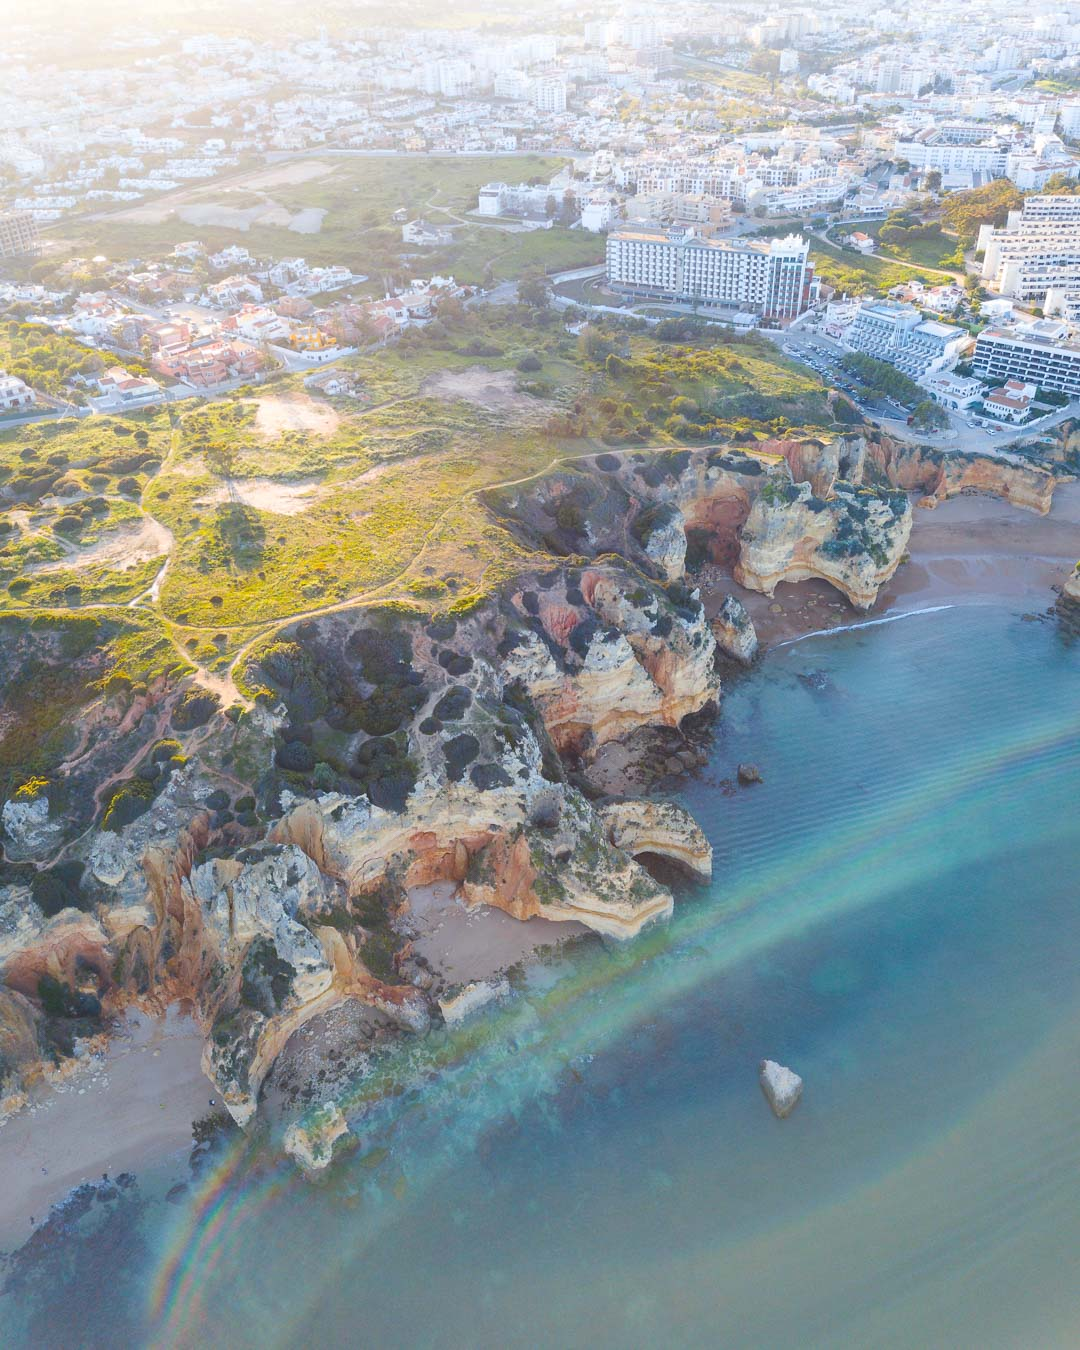 Epic Rock Formations In Algarve, Portugal